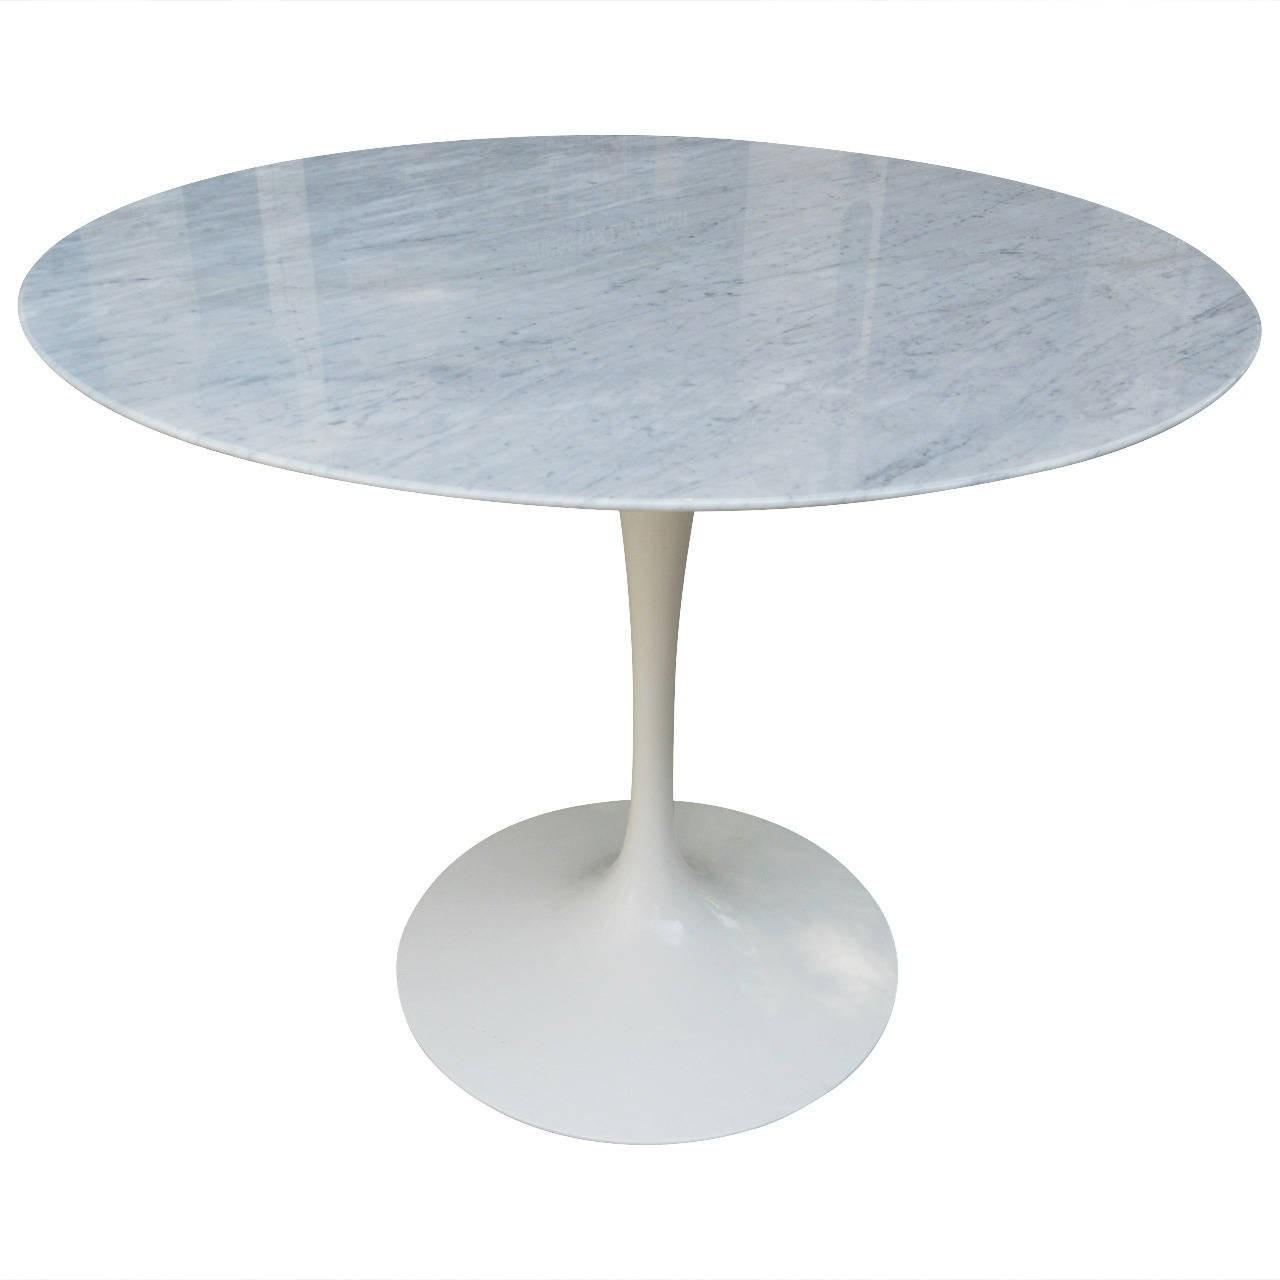 Quality Replcia Designer Furniture Saarinen Style Round Marble Dining Table for sale